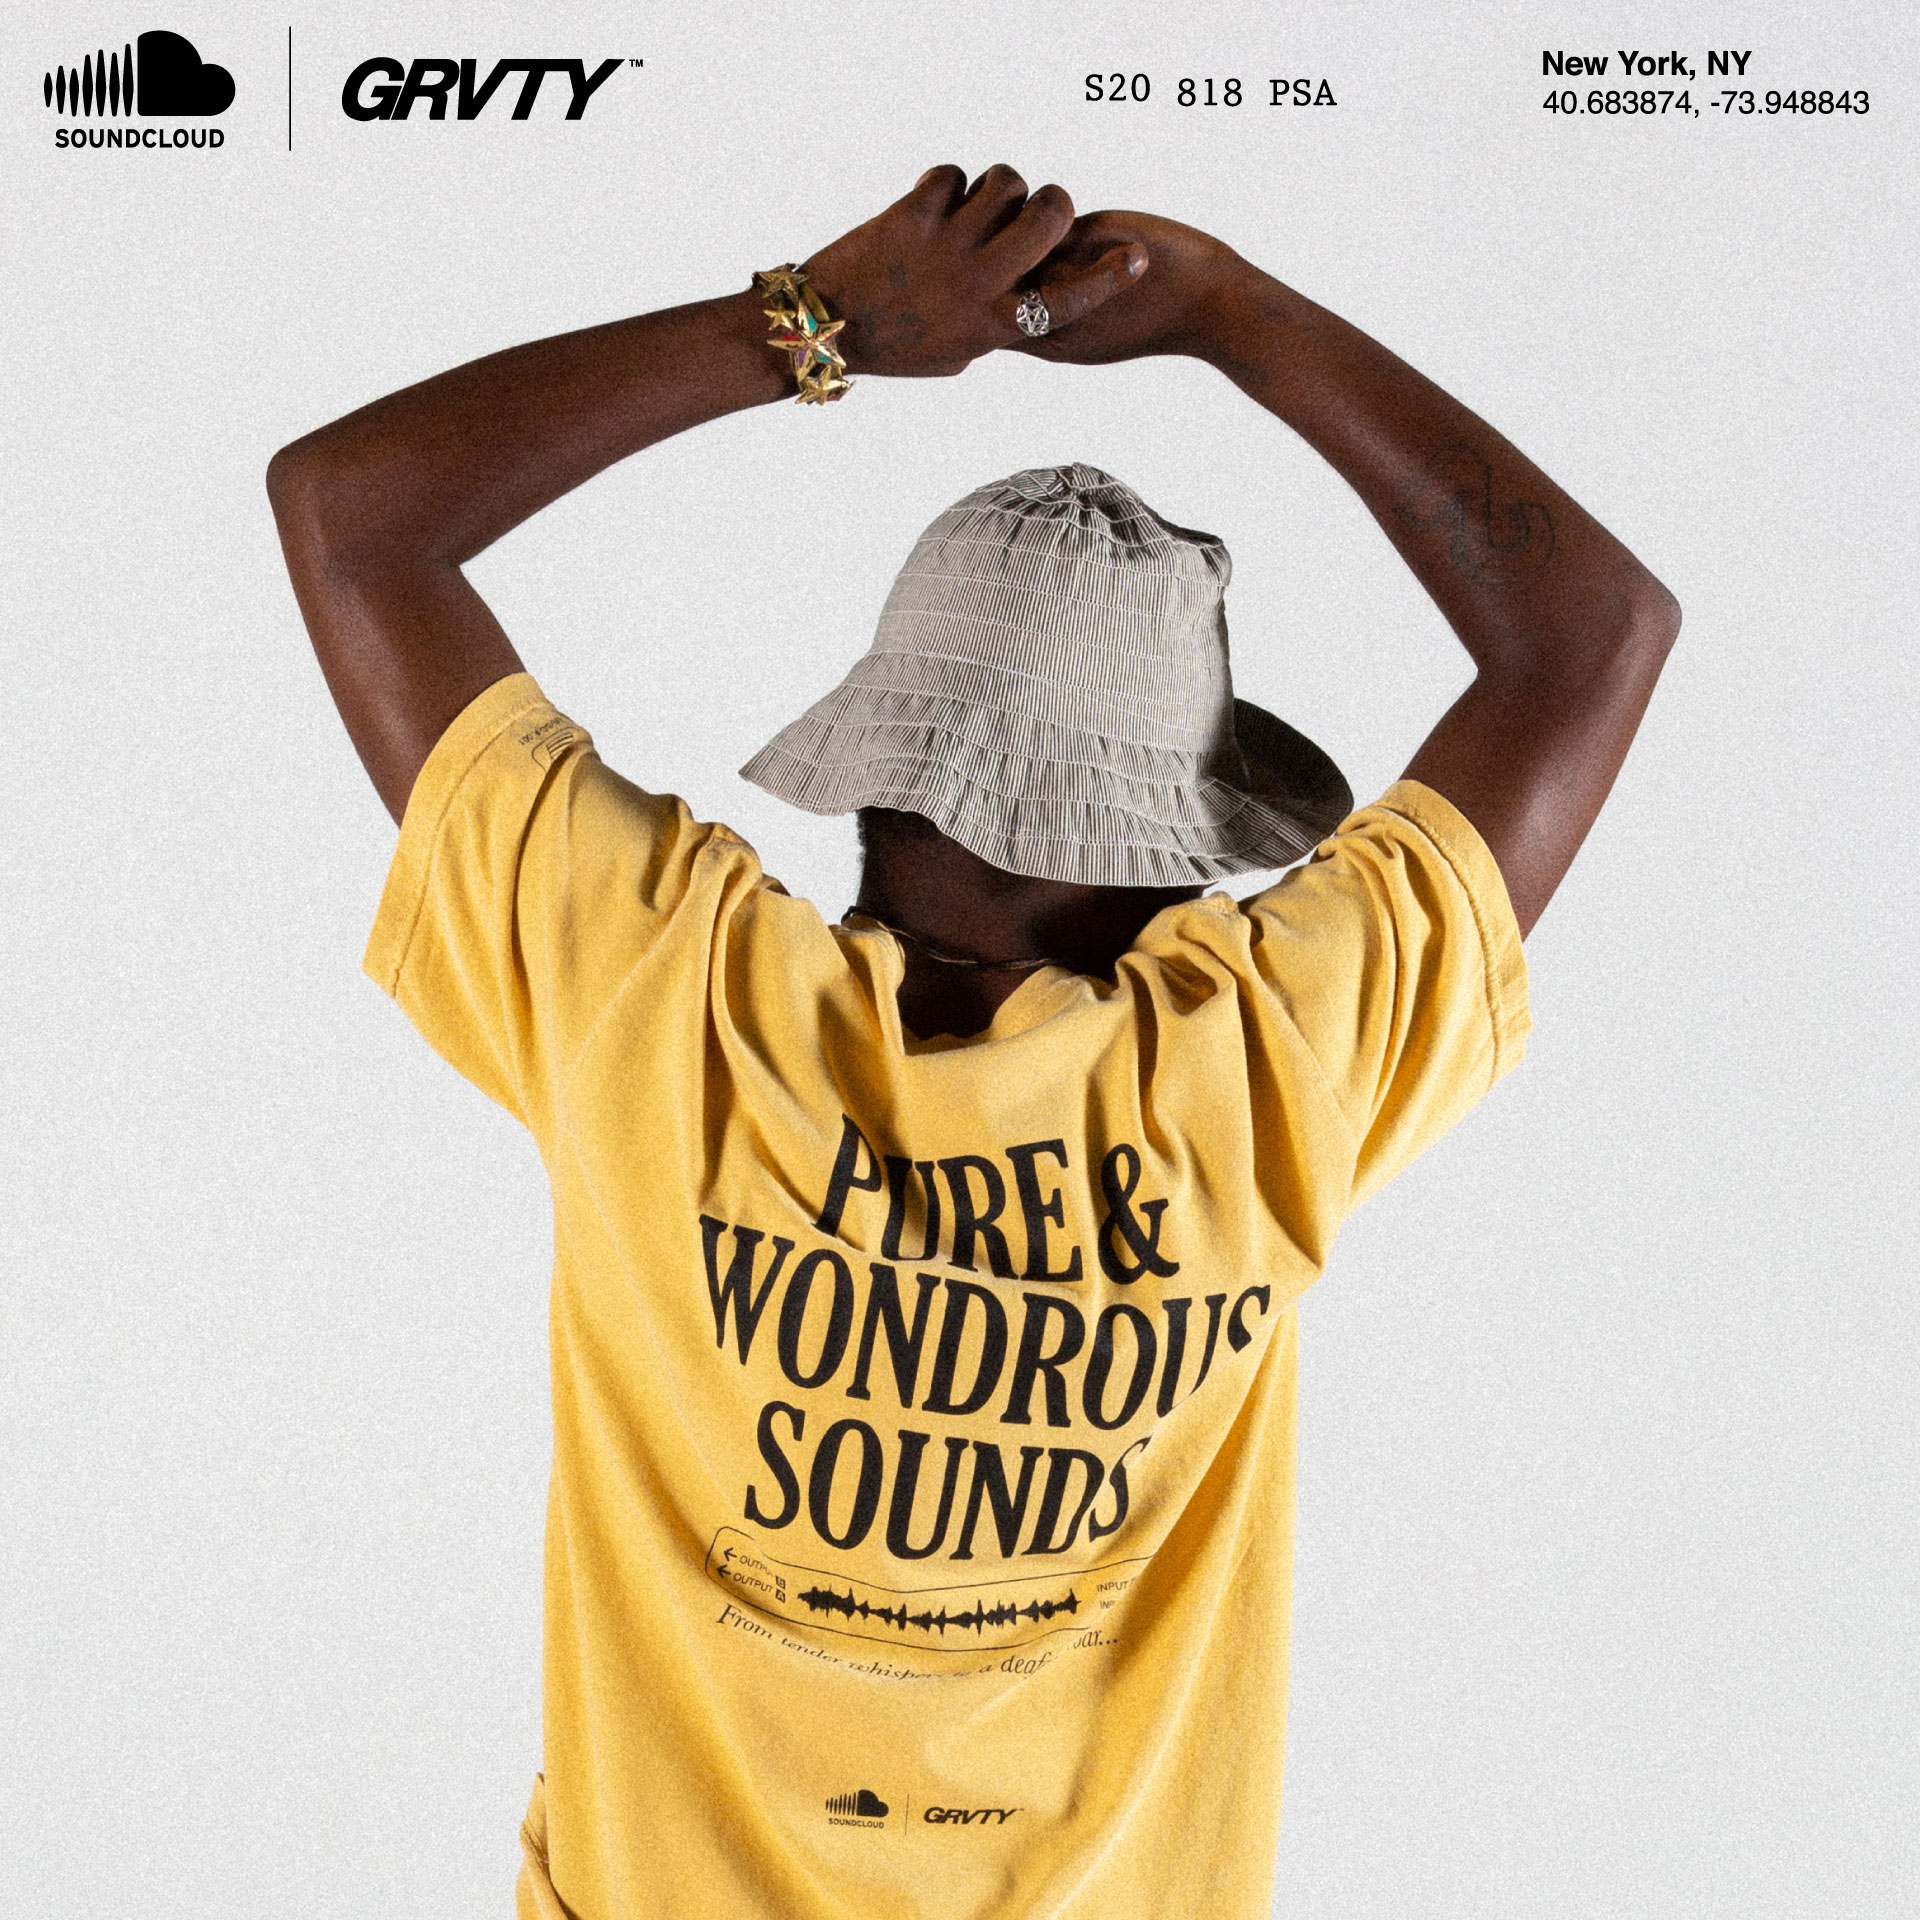 The Pure & Wondrous Sounds Collection by Soundcloud and Grvty